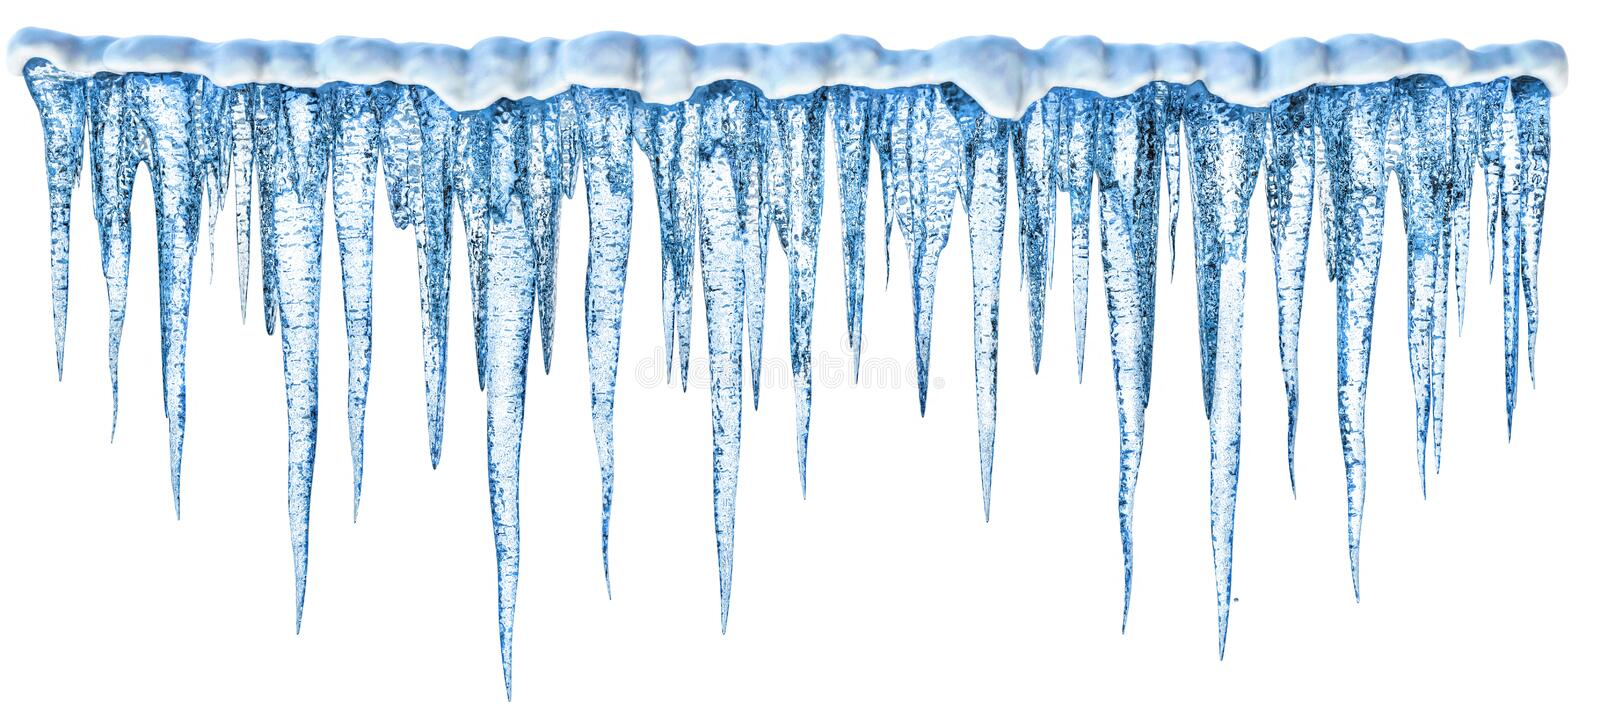 Icicles. Blue cold icicles with on a white background. More my images of decorating winter elemets- dreamstime.com/lightbox_det.php?id=2269484